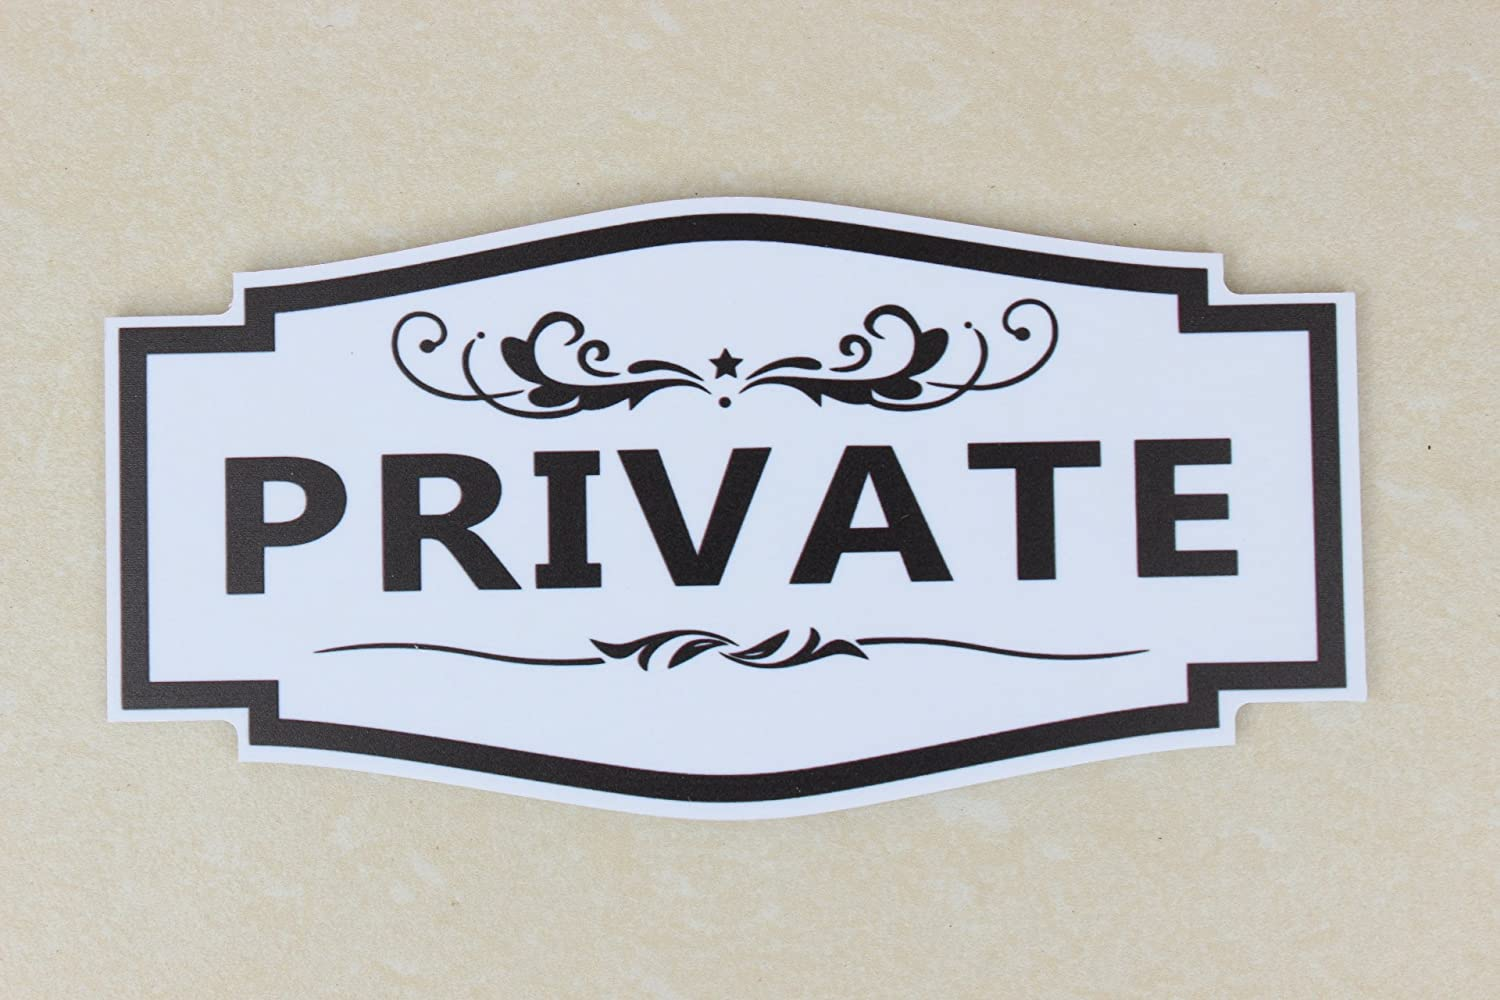 """Meijiafei Private Sign Outdoor/Indoor Use 6""""x3""""- for Business Store, Shop, Cafe, Office, Restaurant (White)"""